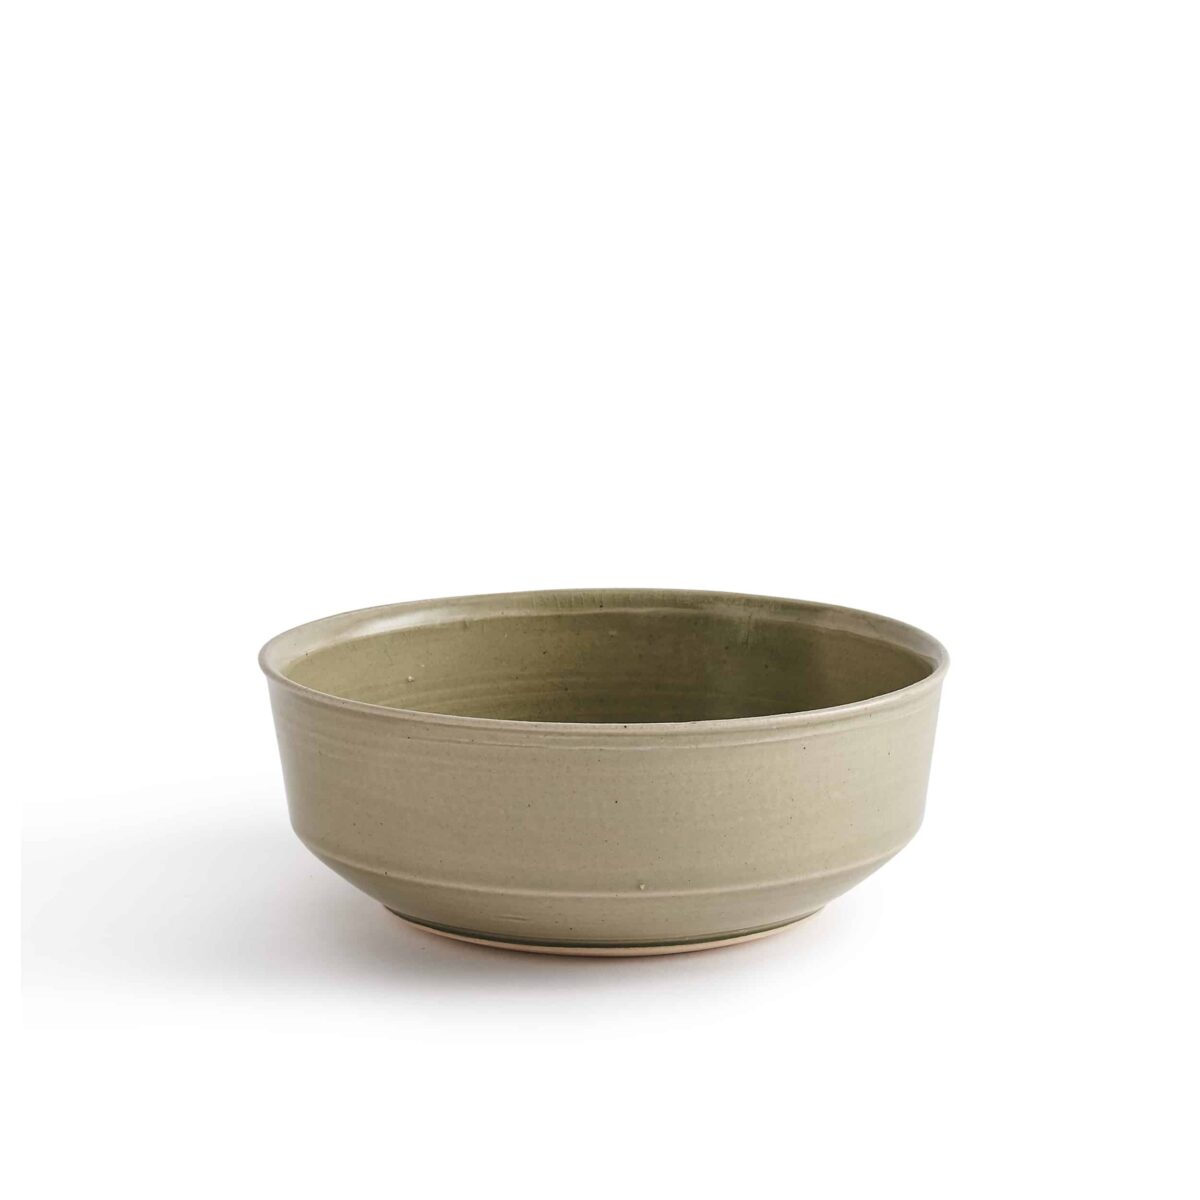 Marland Bowl Sage Green – Another Country – Photo Credit Yeshen Venema – 21.11.185270 copy